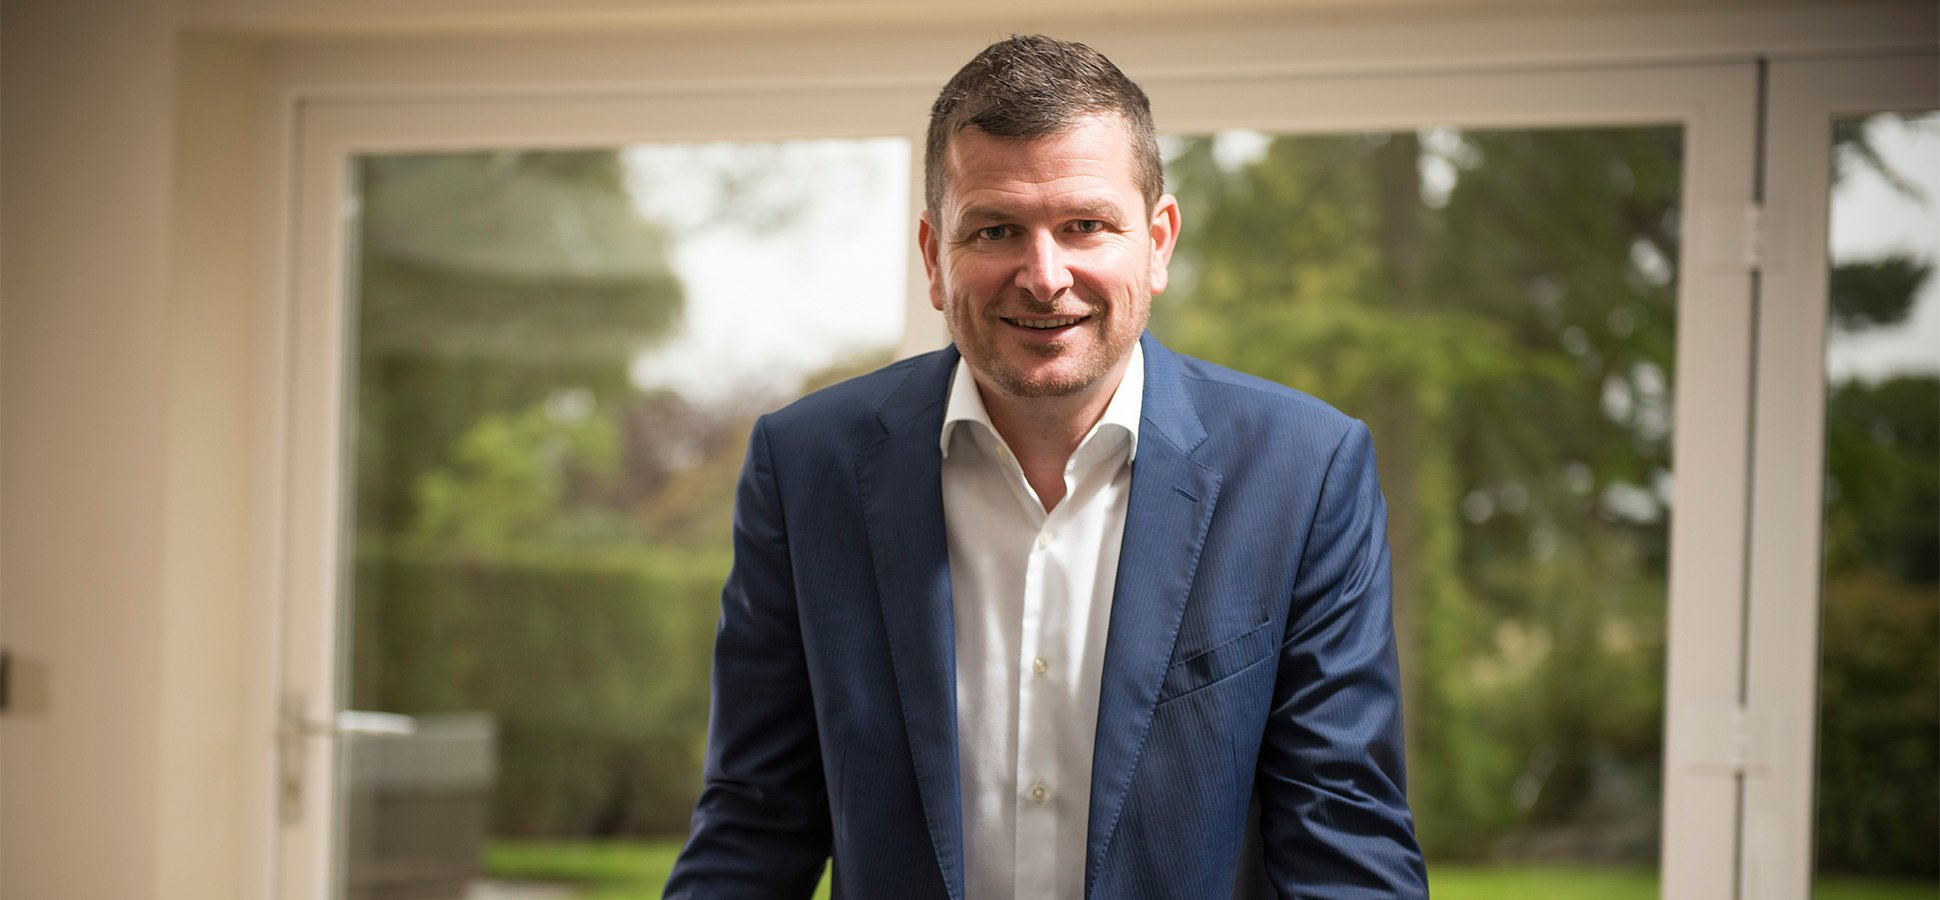 How Purplebricks Reimagined the Home-Selling Market and Went From Zero to $200 Million in 4 Years